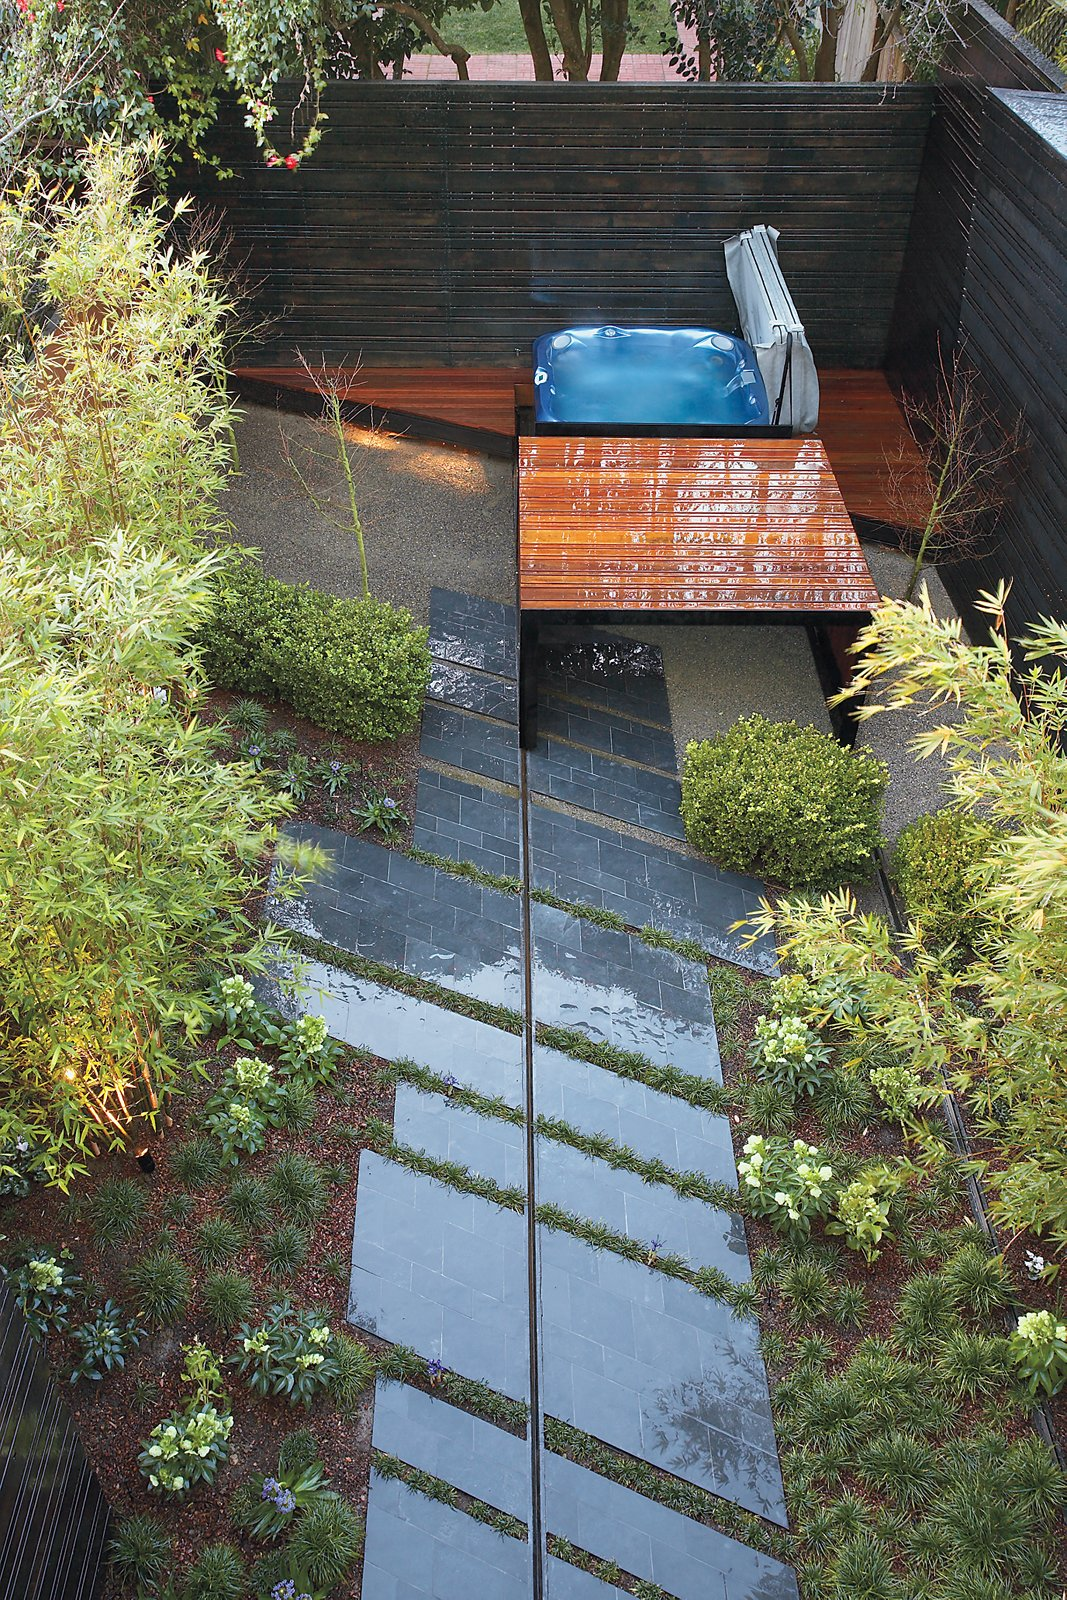 Parallelogram-shaped stone slabs line the walkway to the hot tub.